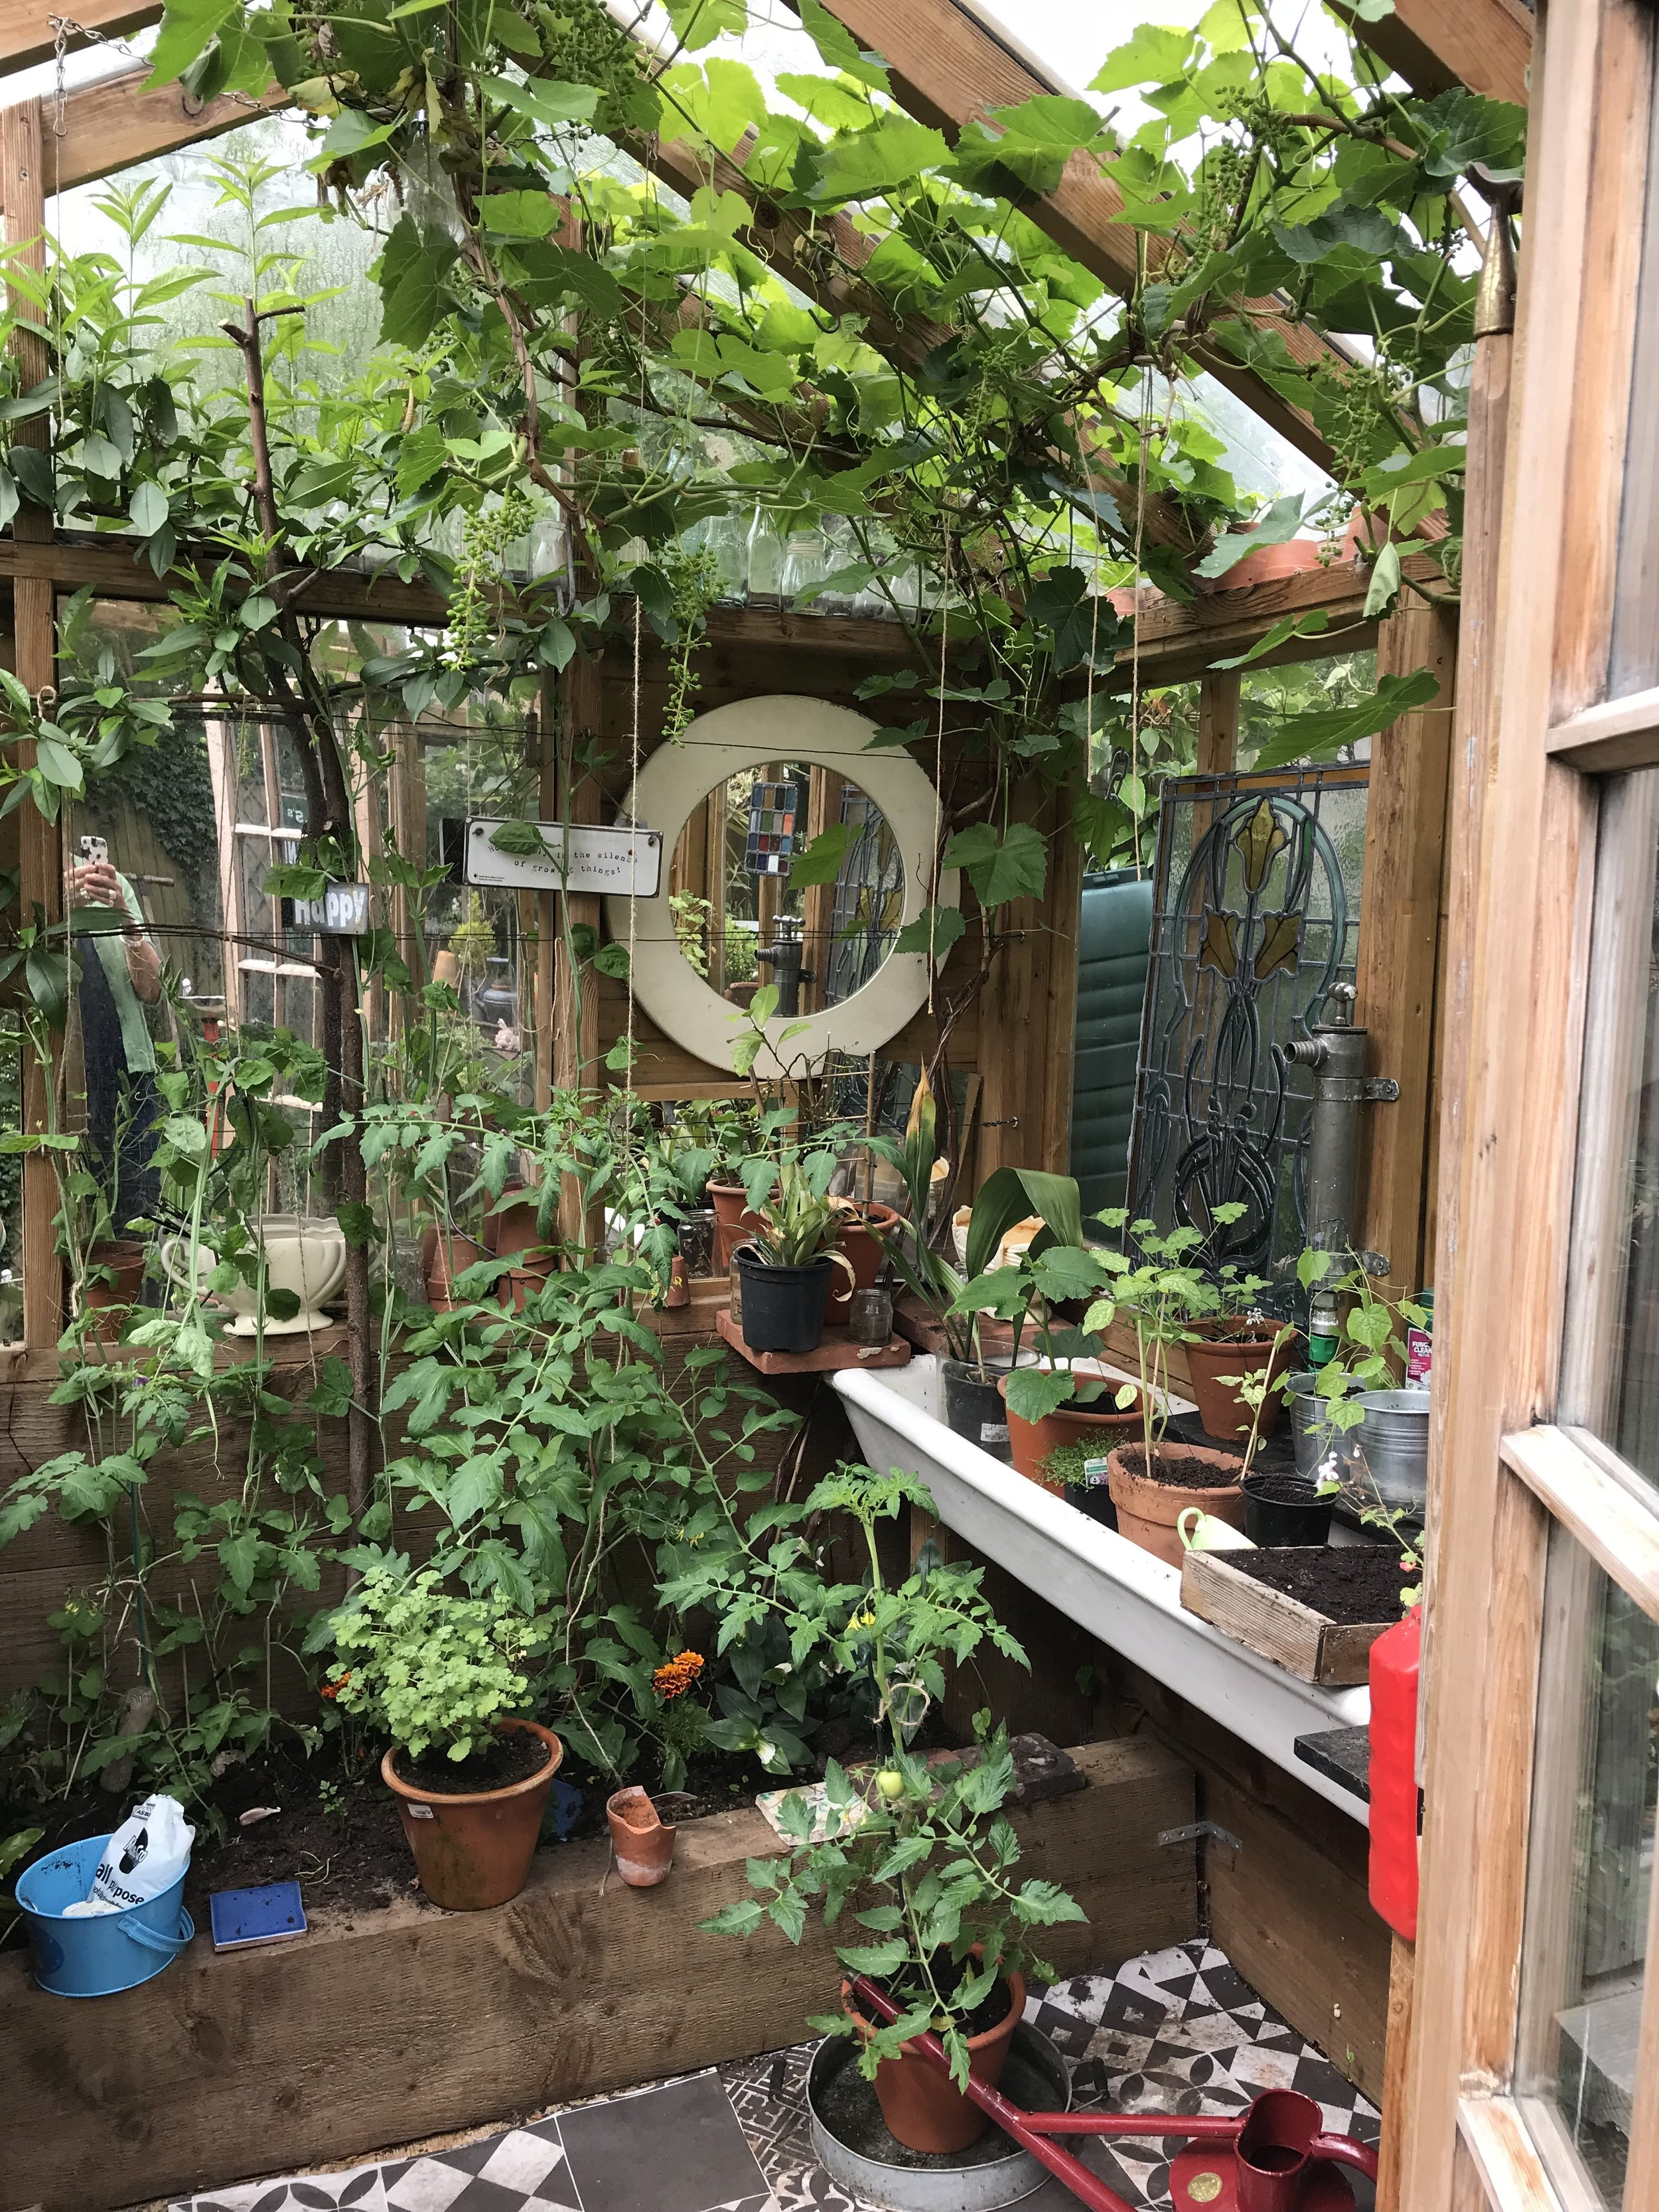 Mandy's glorious greenhouse. It's not very big but shes love it!